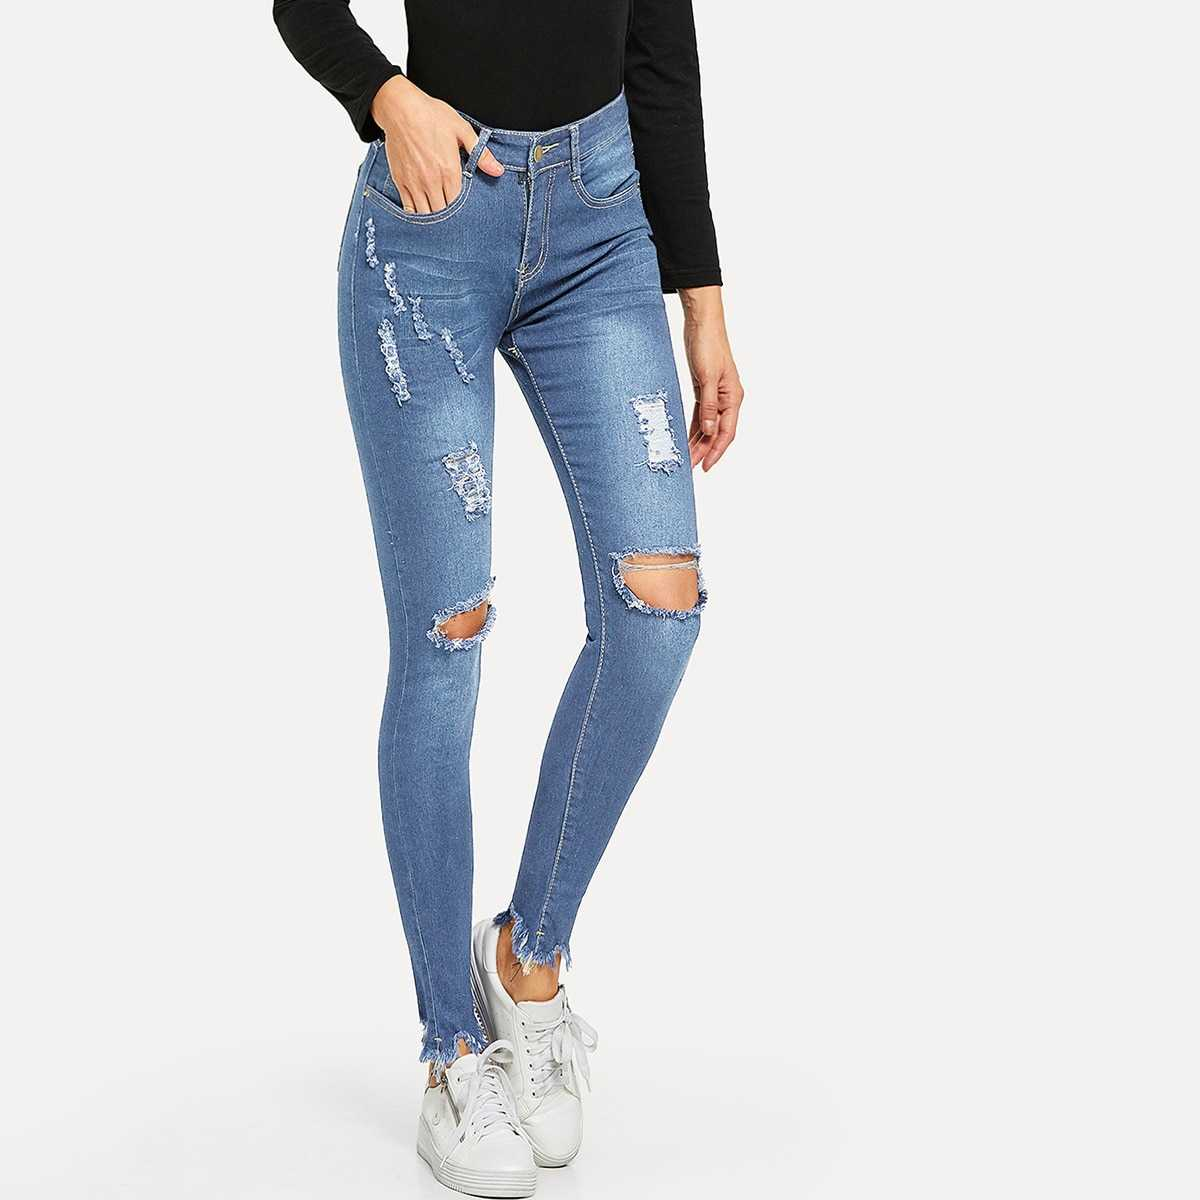 Ripped Raw Hem Jeans in Blue by ROMWE on GOOFASH